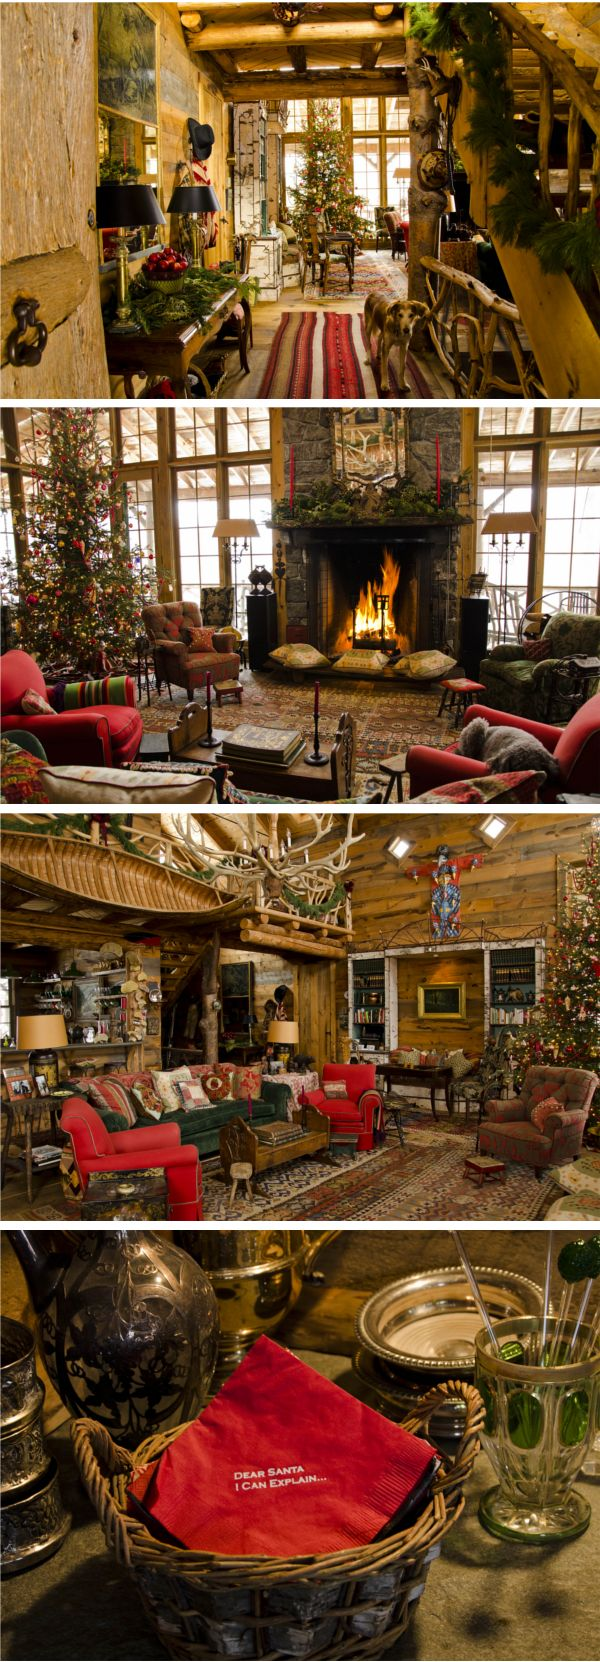 comfy, cozy, holiday decor...I want to grab a thick cable knit and sit by the fire!